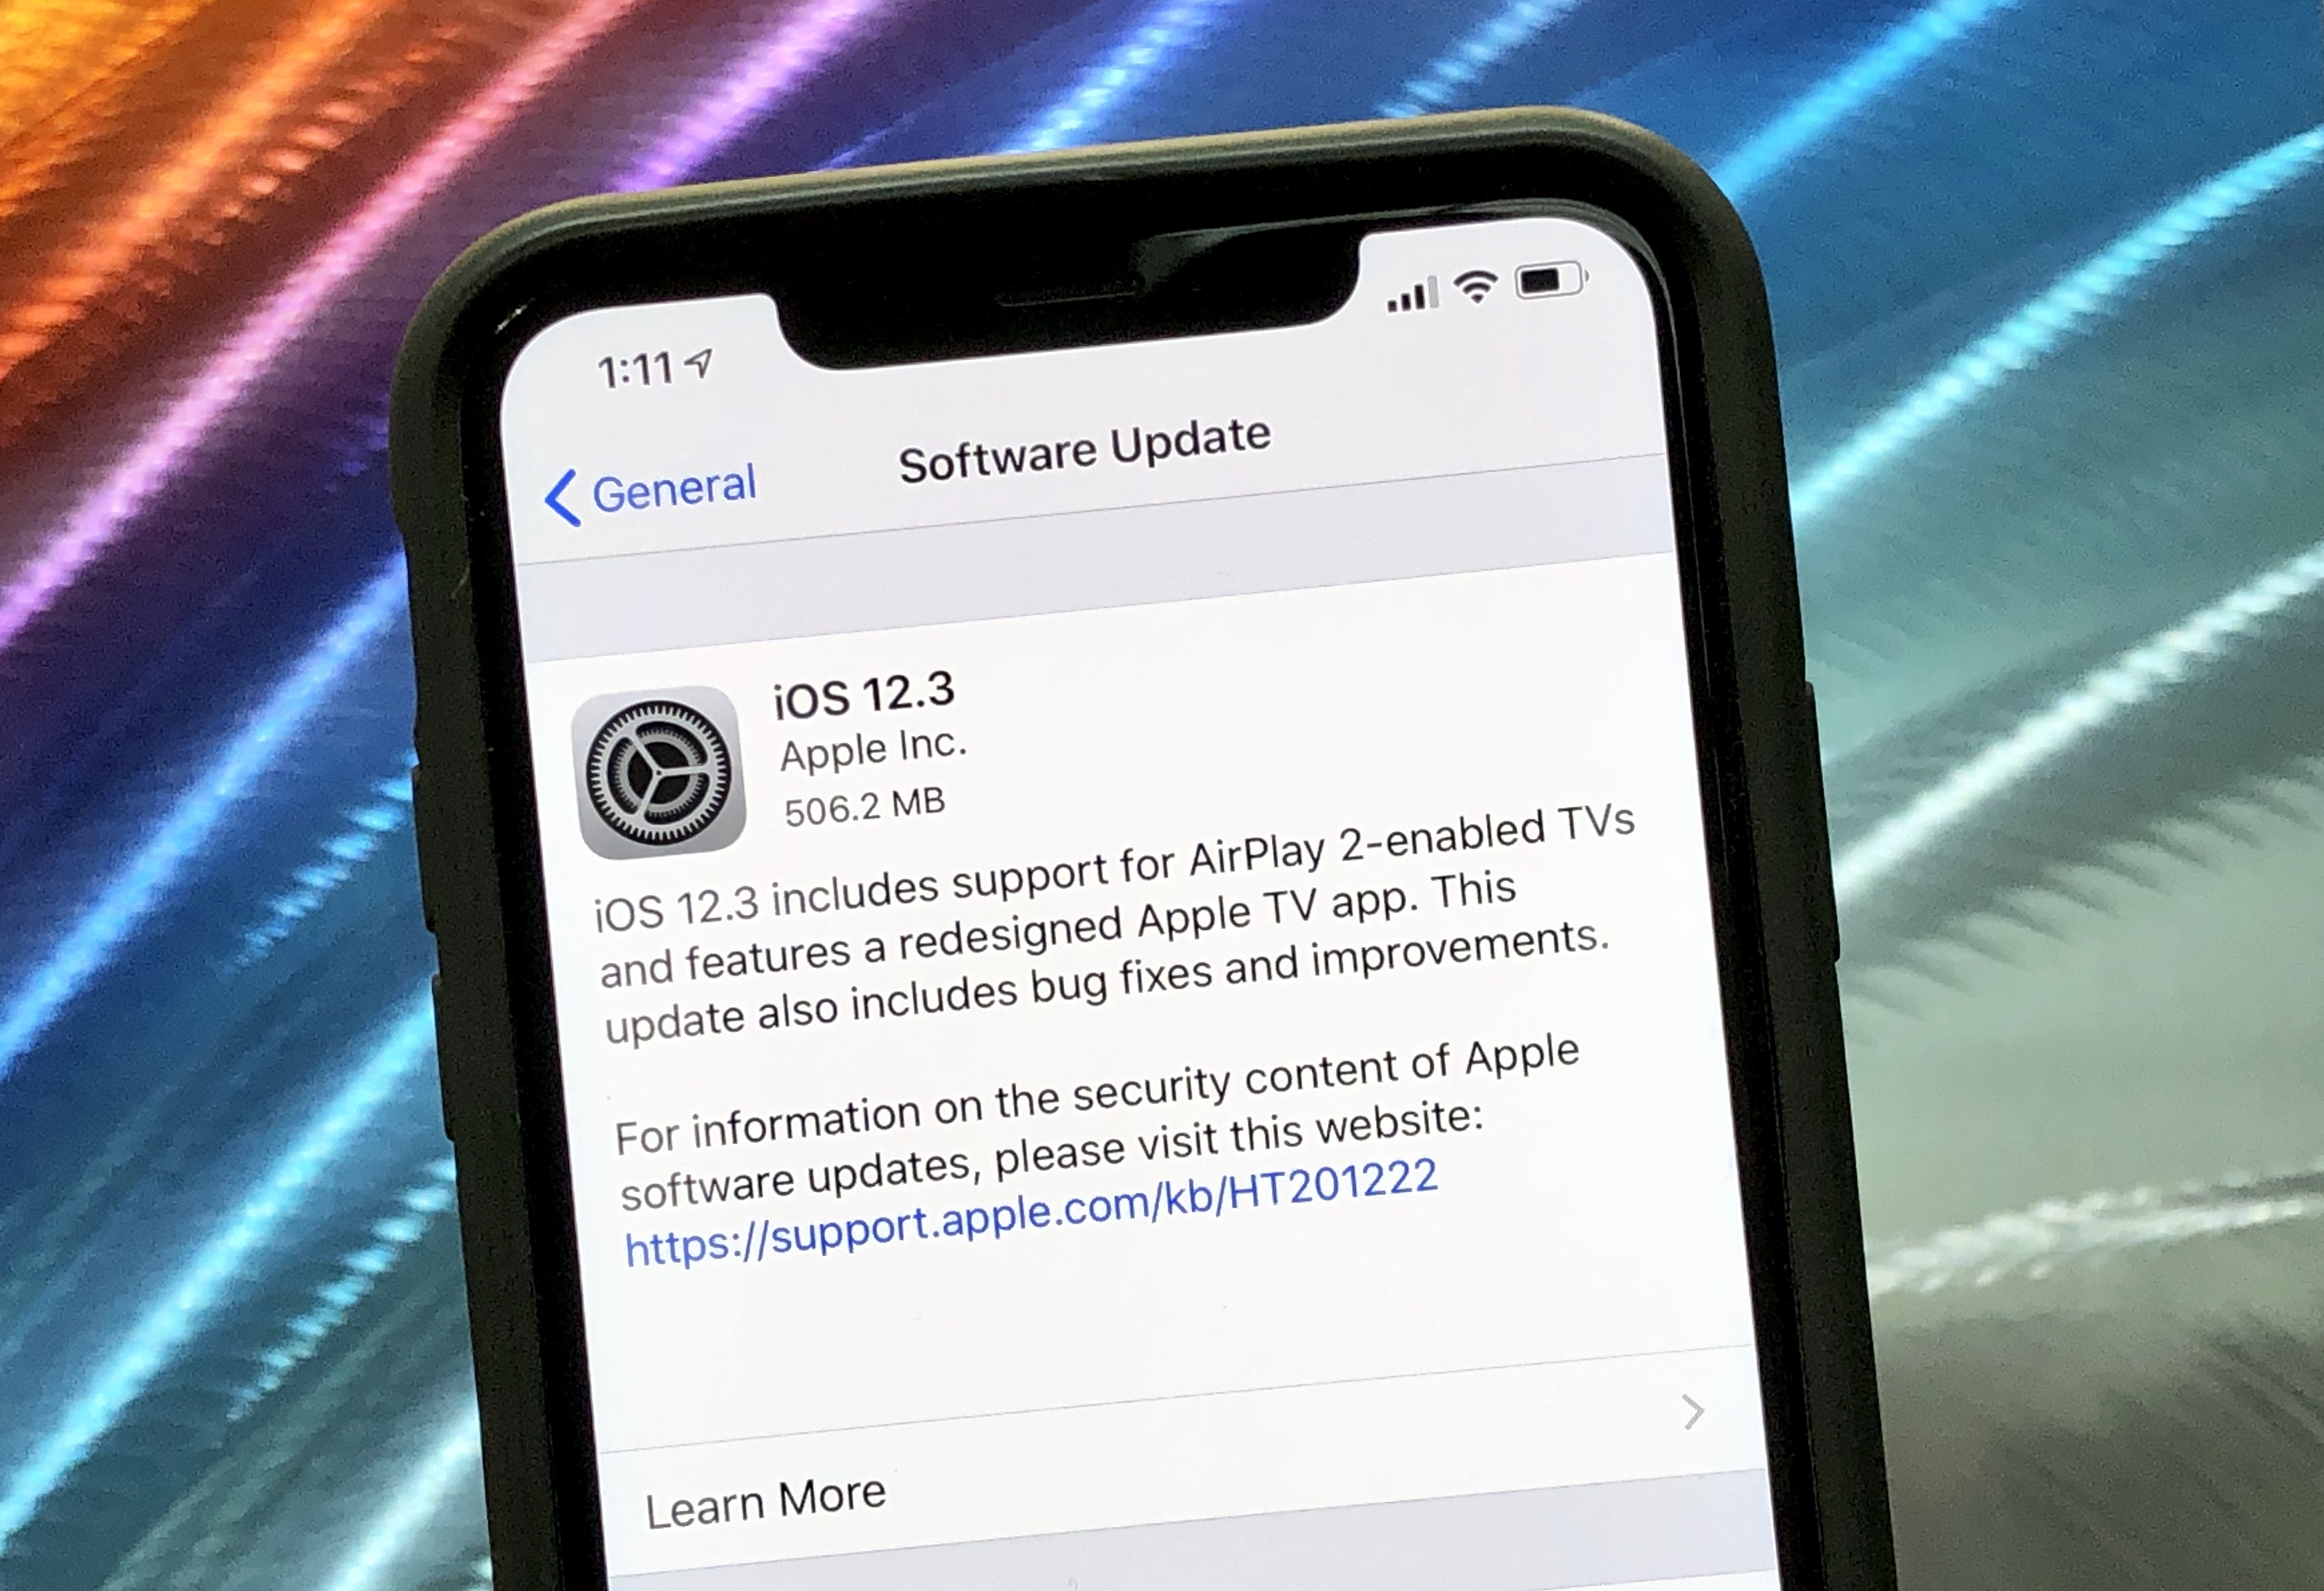 5 Things to Know About the iOS 12 3 Update